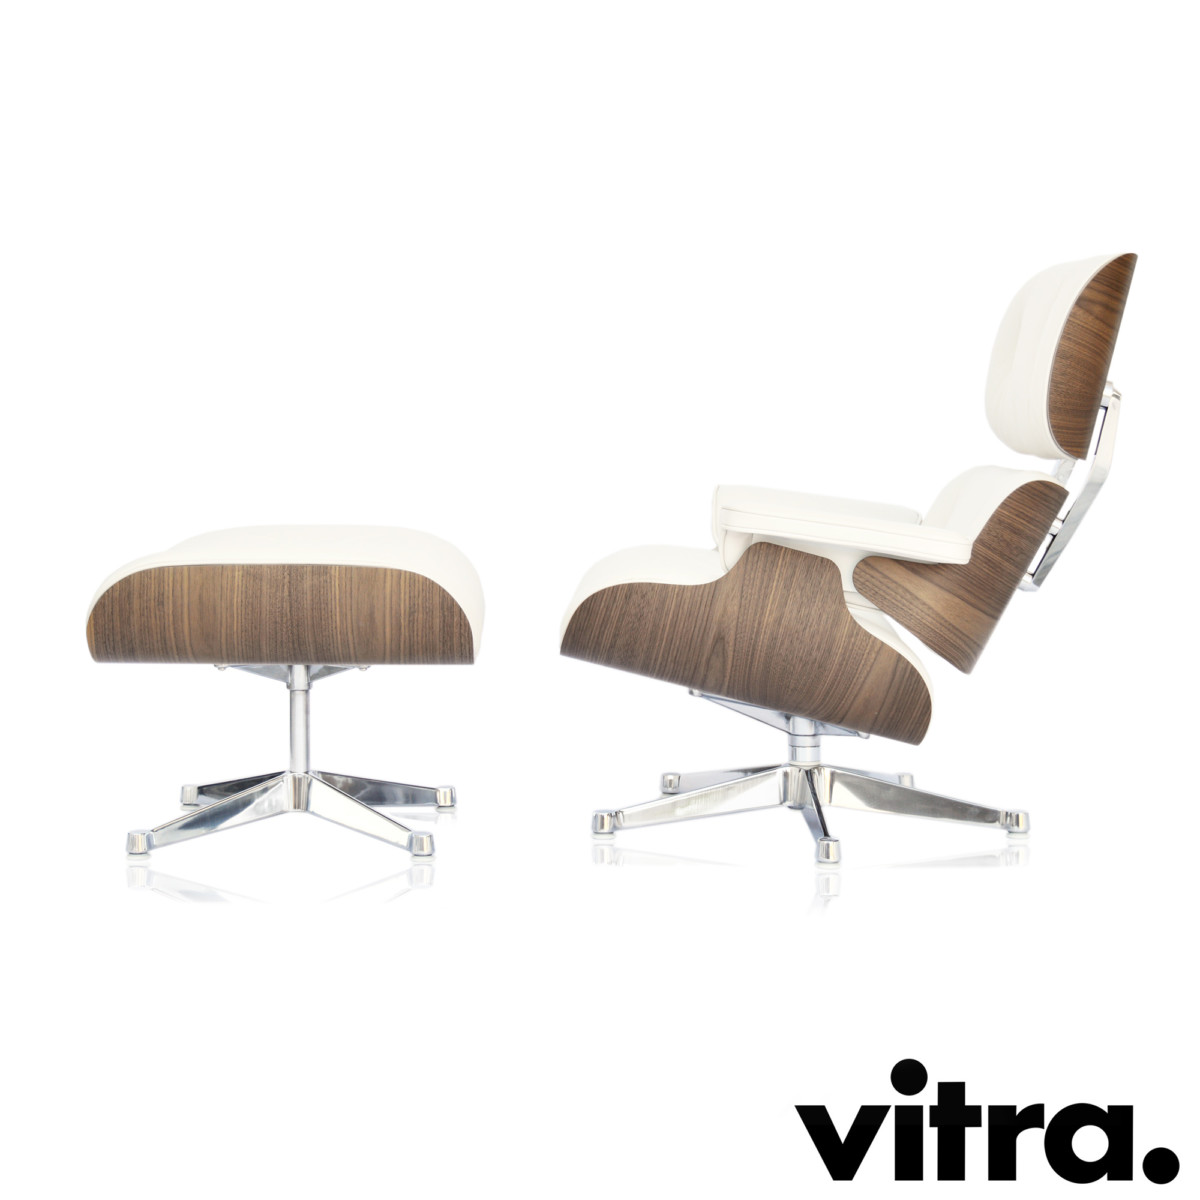 Vitra eames lounge chair xl ottoman zum sonderpreis bei for Vitra lounge chair nachbau